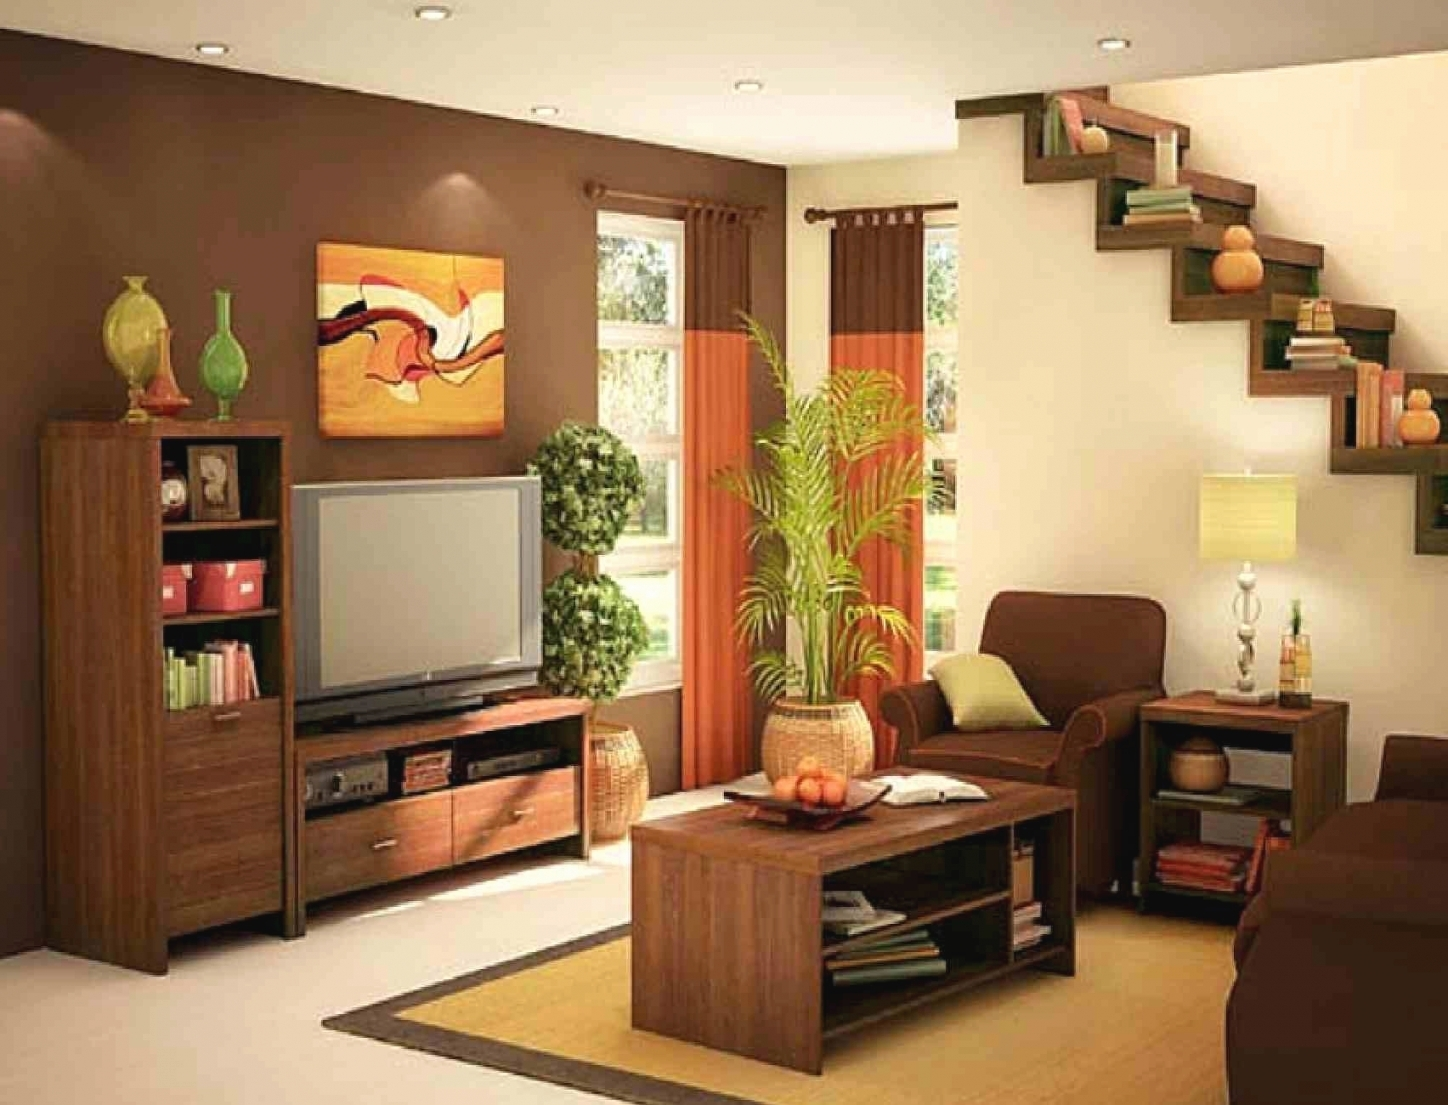 Outstanding Indian Interior Design Ideas Living Room 9 Simple Of Layjao